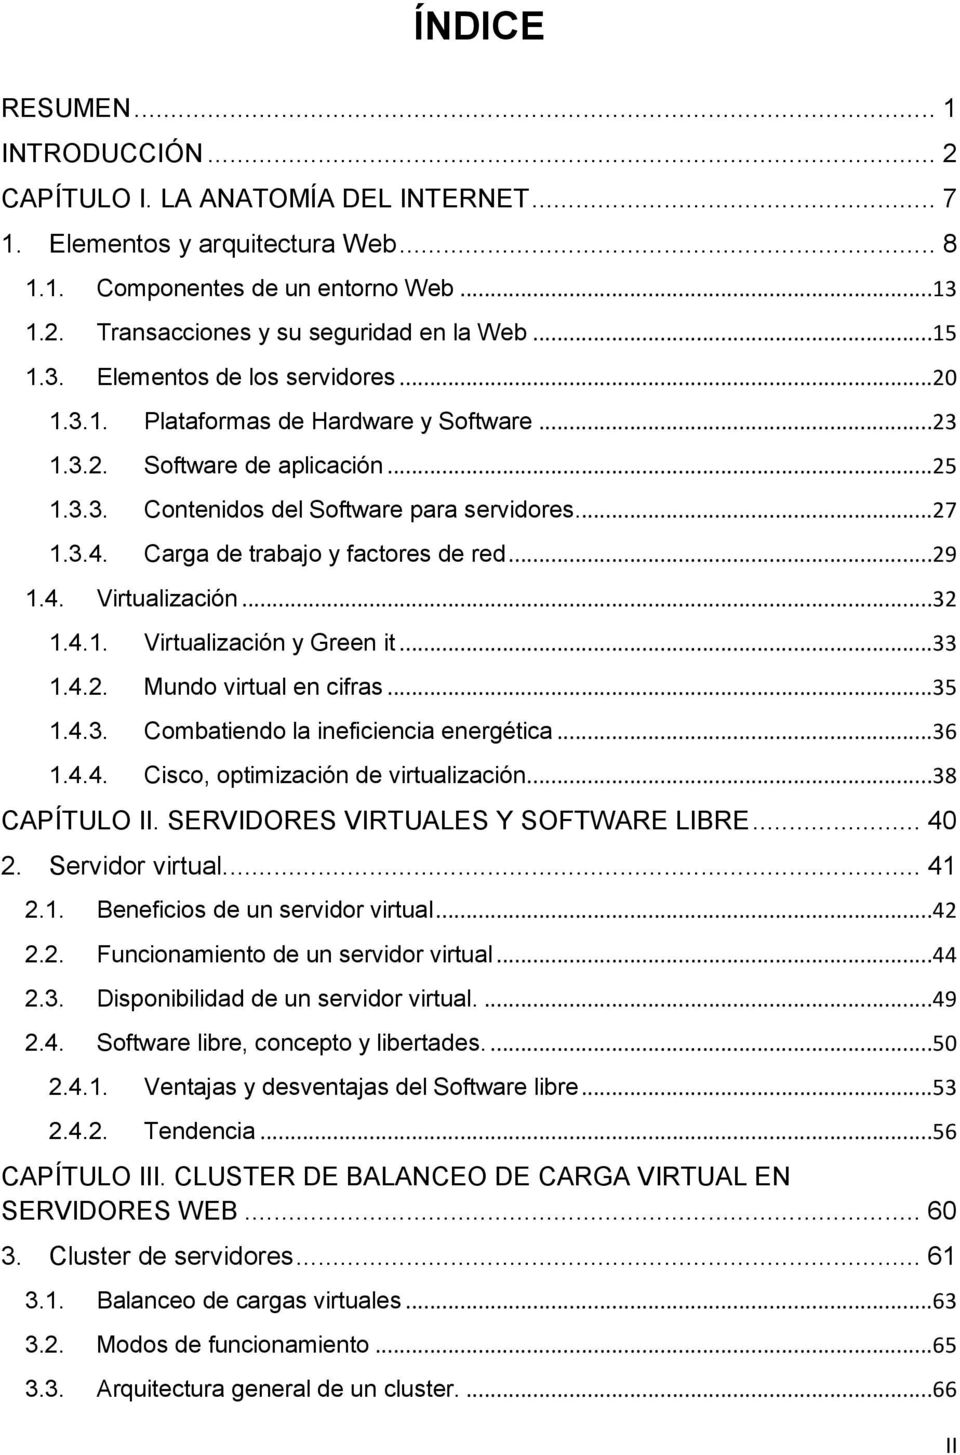 Carga de trabajo y factores de red...29 1.4. Virtualización...32 1.4.1. Virtualización y Green it...33 1.4.2. Mundo virtual en cifras...35 1.4.3. Combatiendo la ineficiencia energética...36 1.4.4. Cisco, optimización de virtualización.